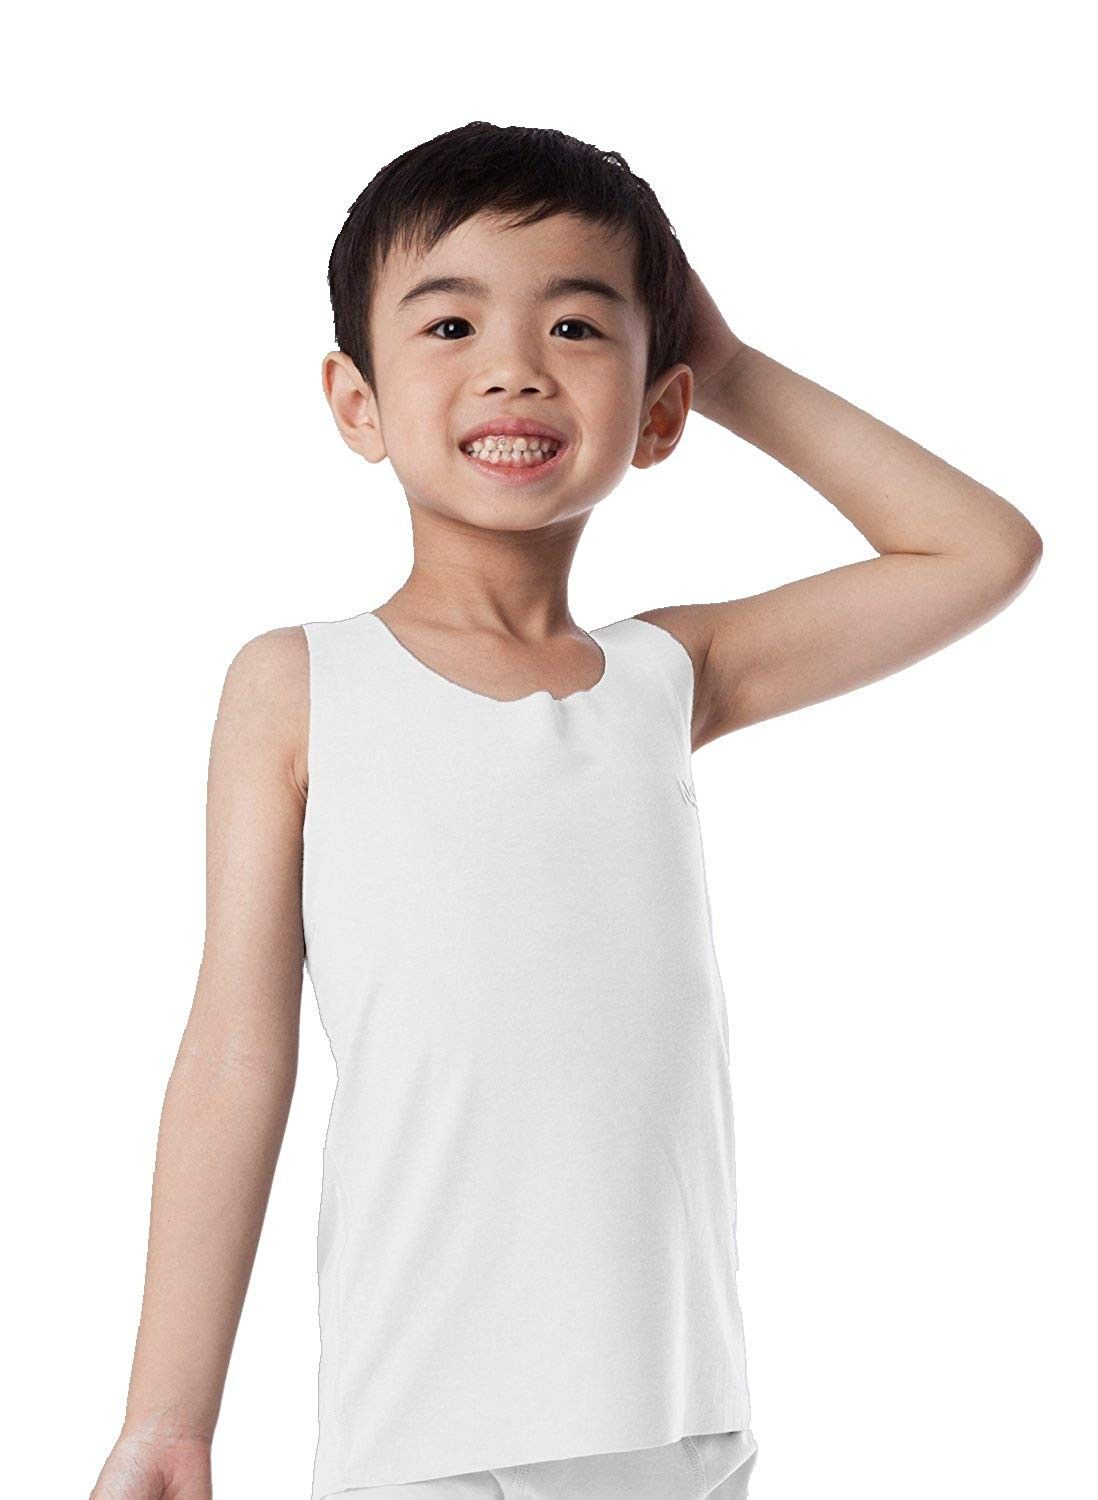 Pin on Kids Clothing for Boy